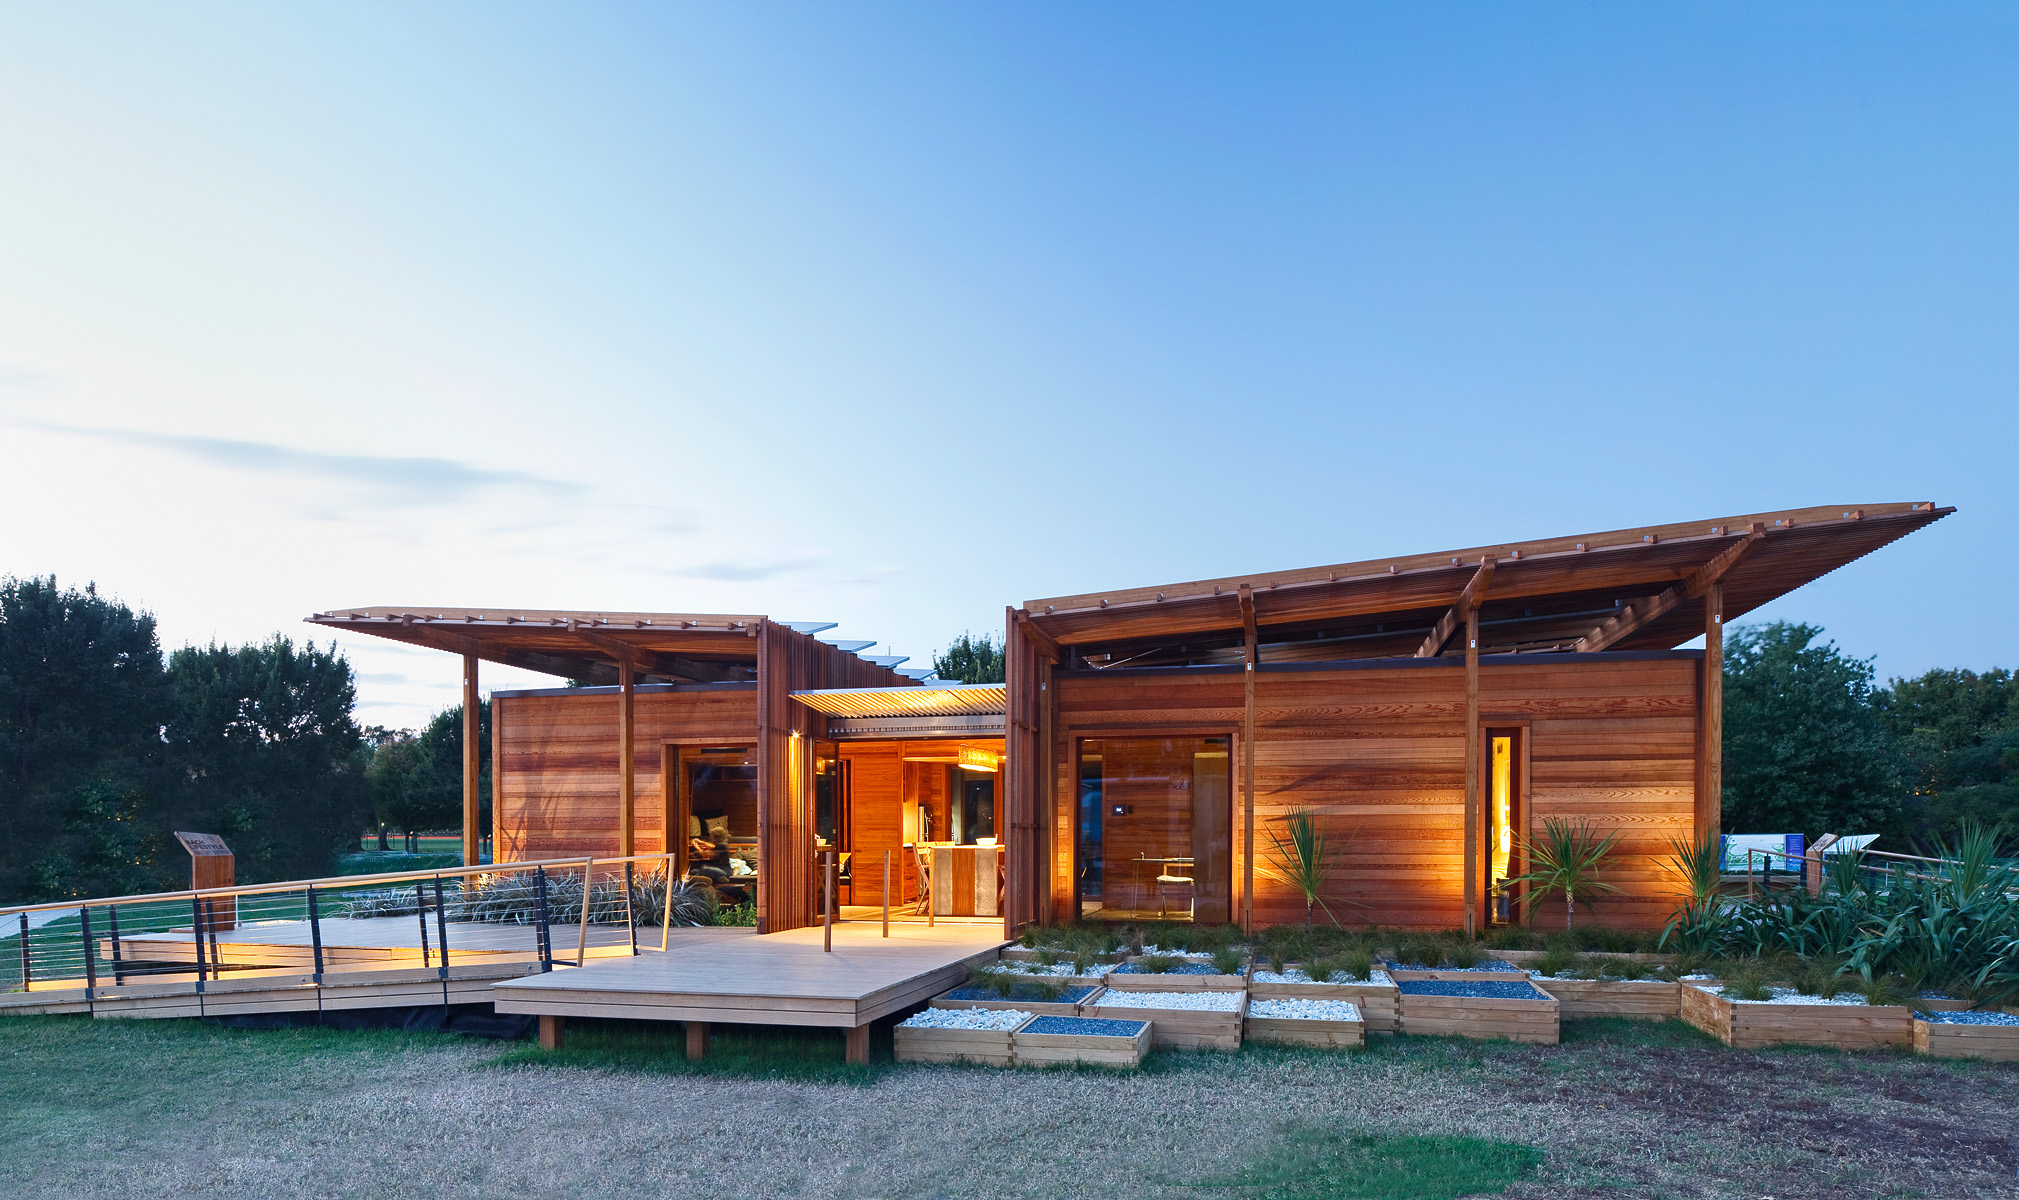 First Light HouseU.S. Solar Decathlon Award-Winning DesignUniversity of WellingtonNew Zealand